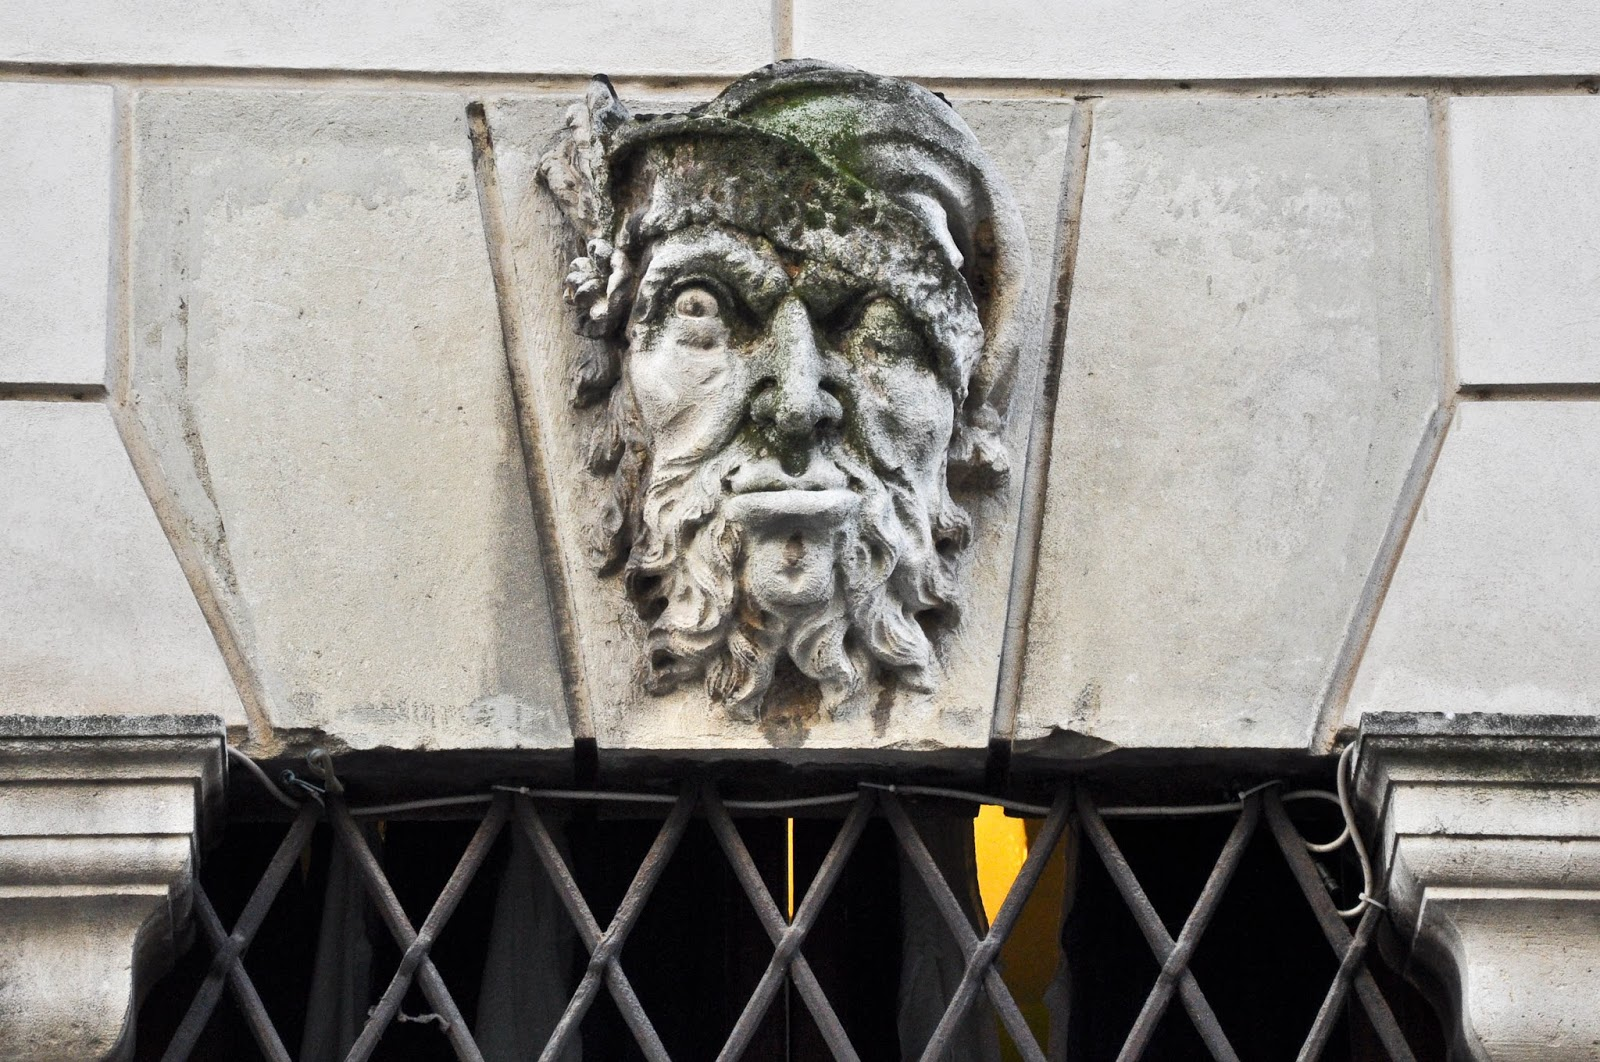 A face on Corso Palladio in Vicenza